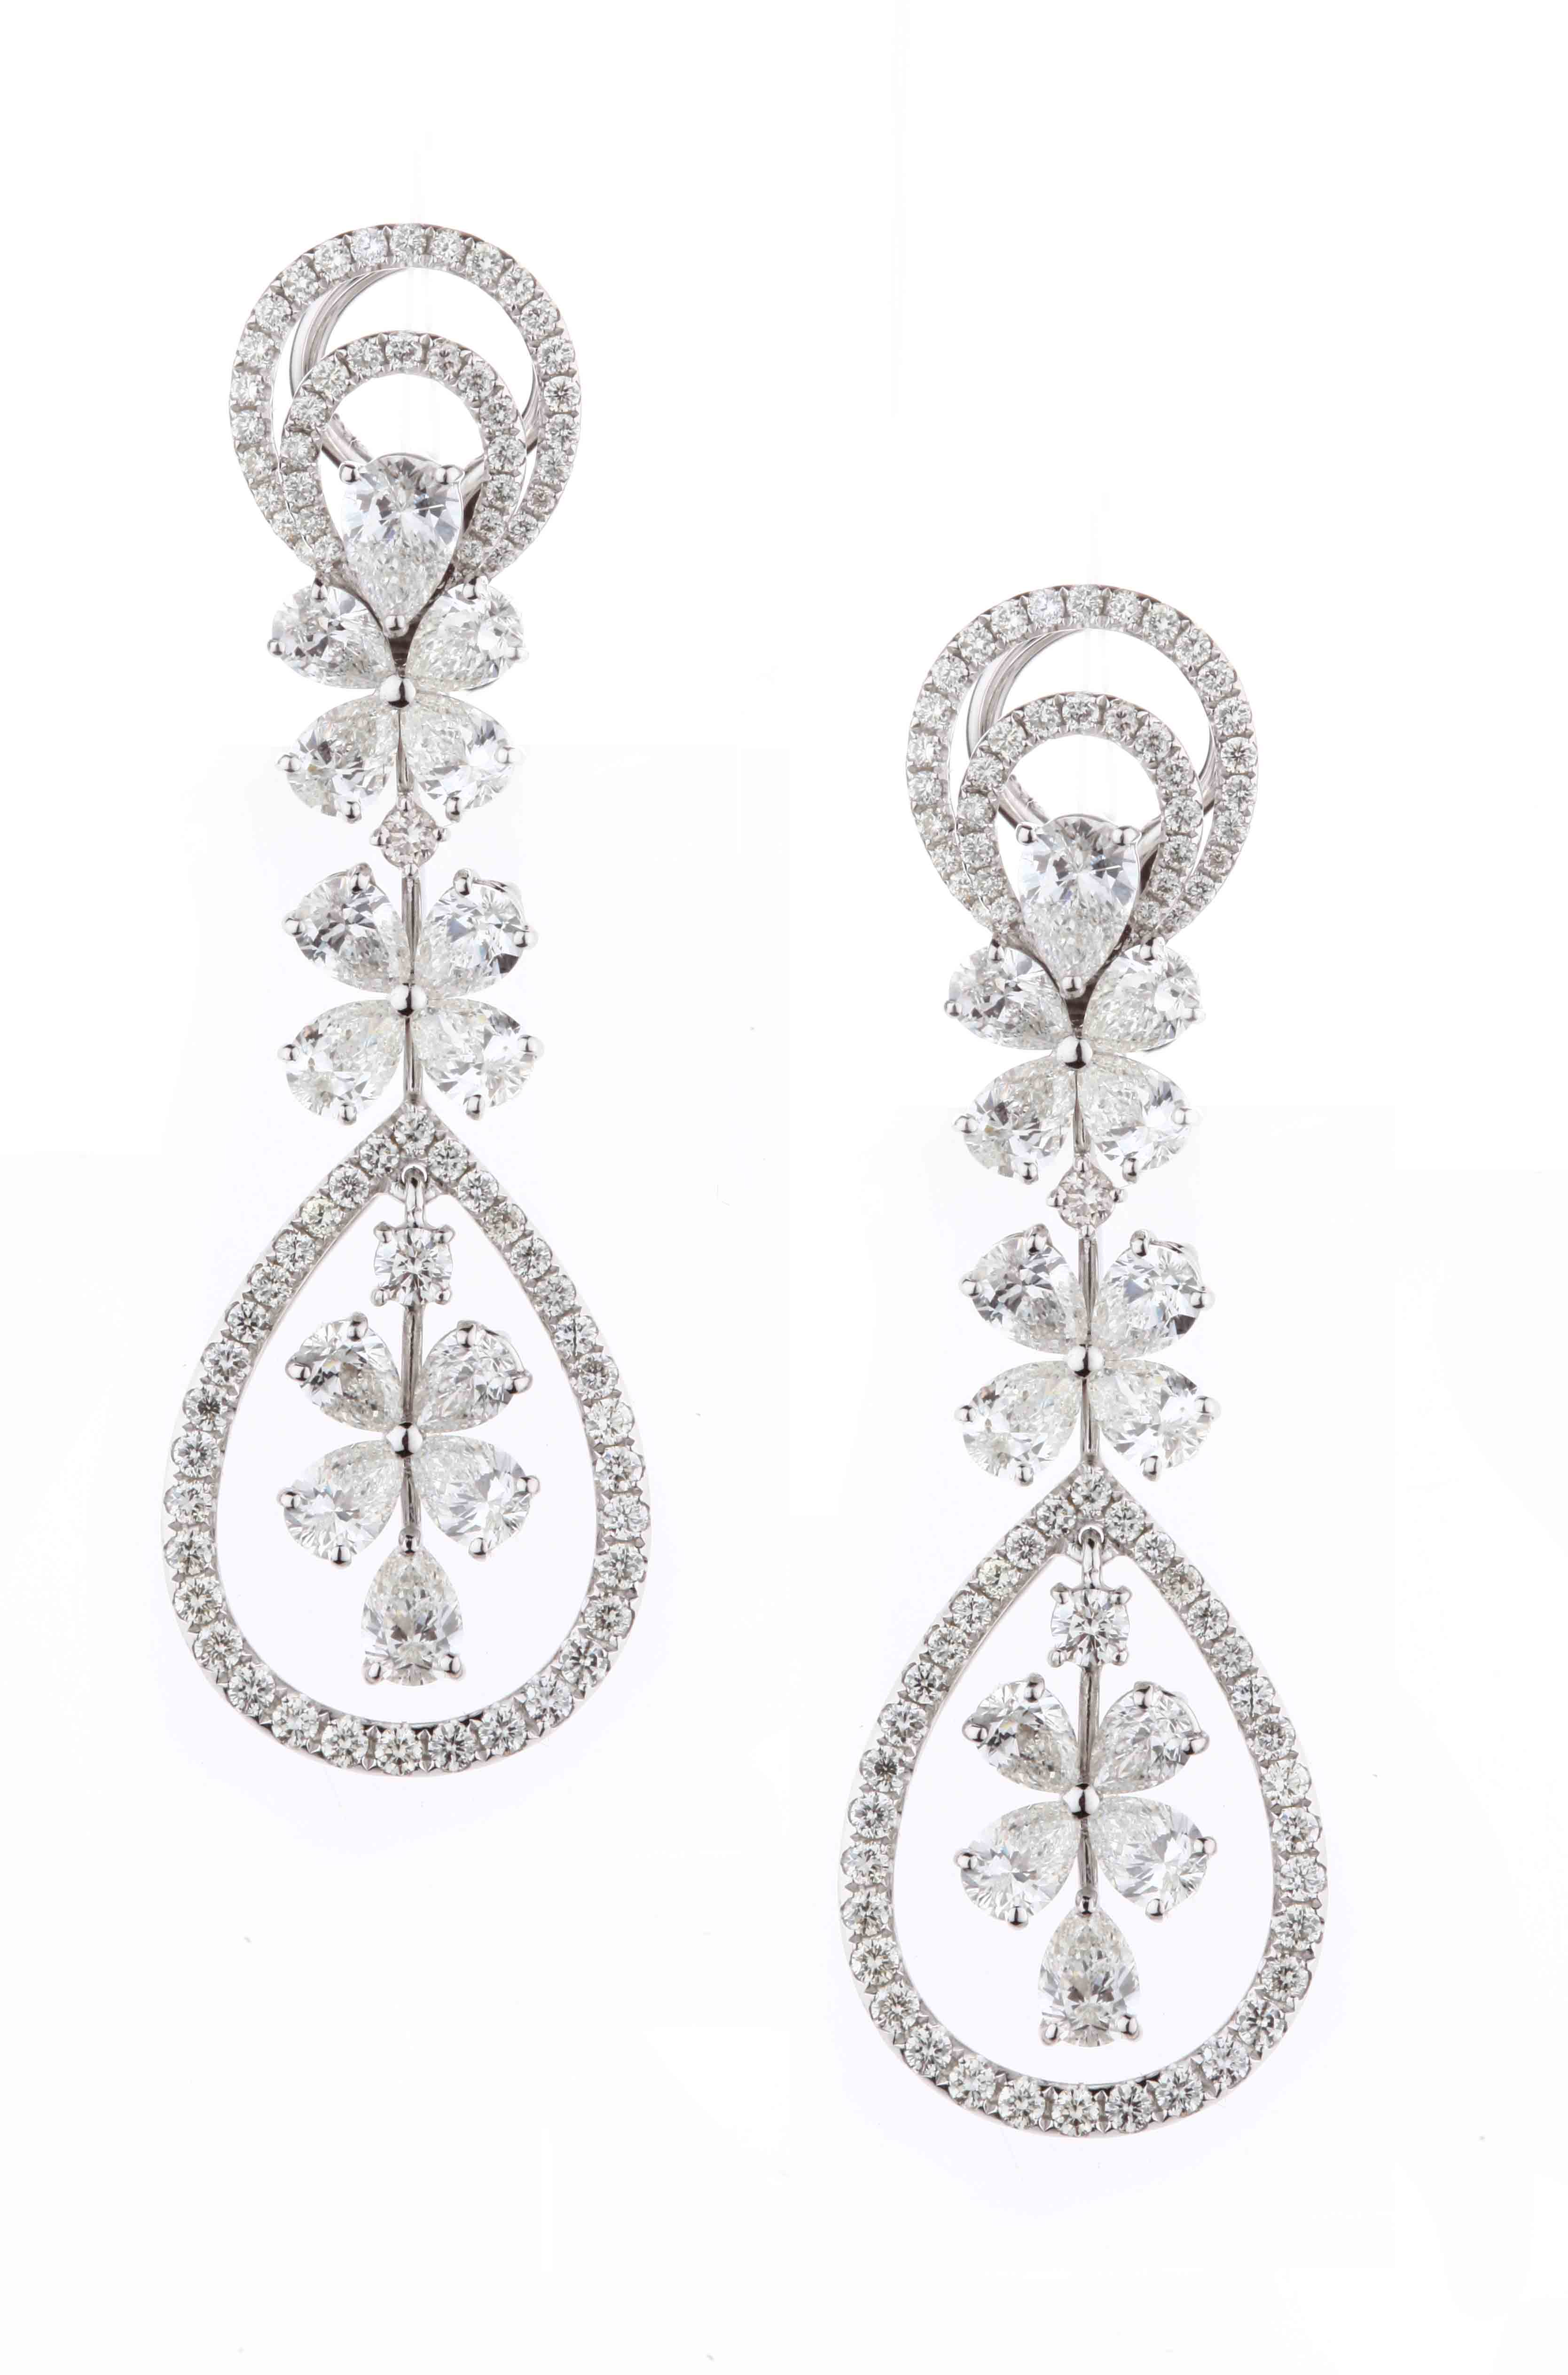 Diamond floral earrings by Entice